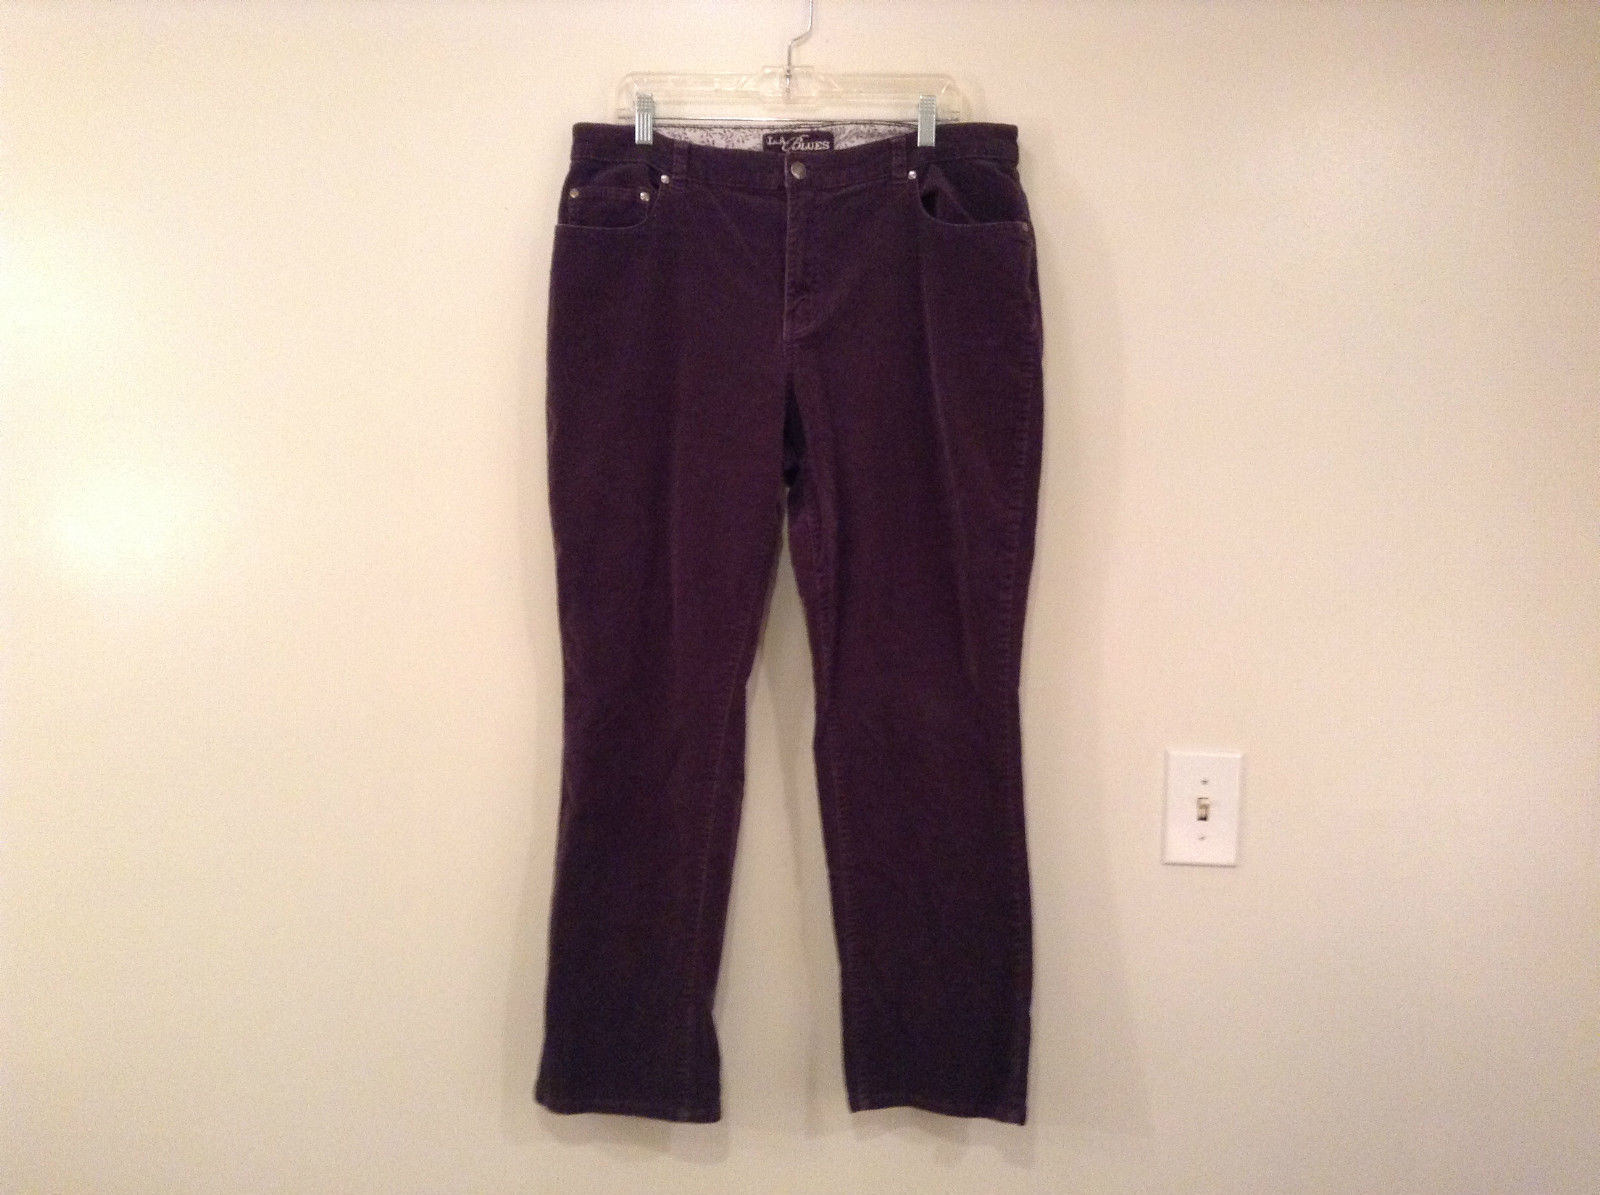 L A Blues Velvet Dark Brown Jeans Size 18W Button and Zipper Closure Pockets